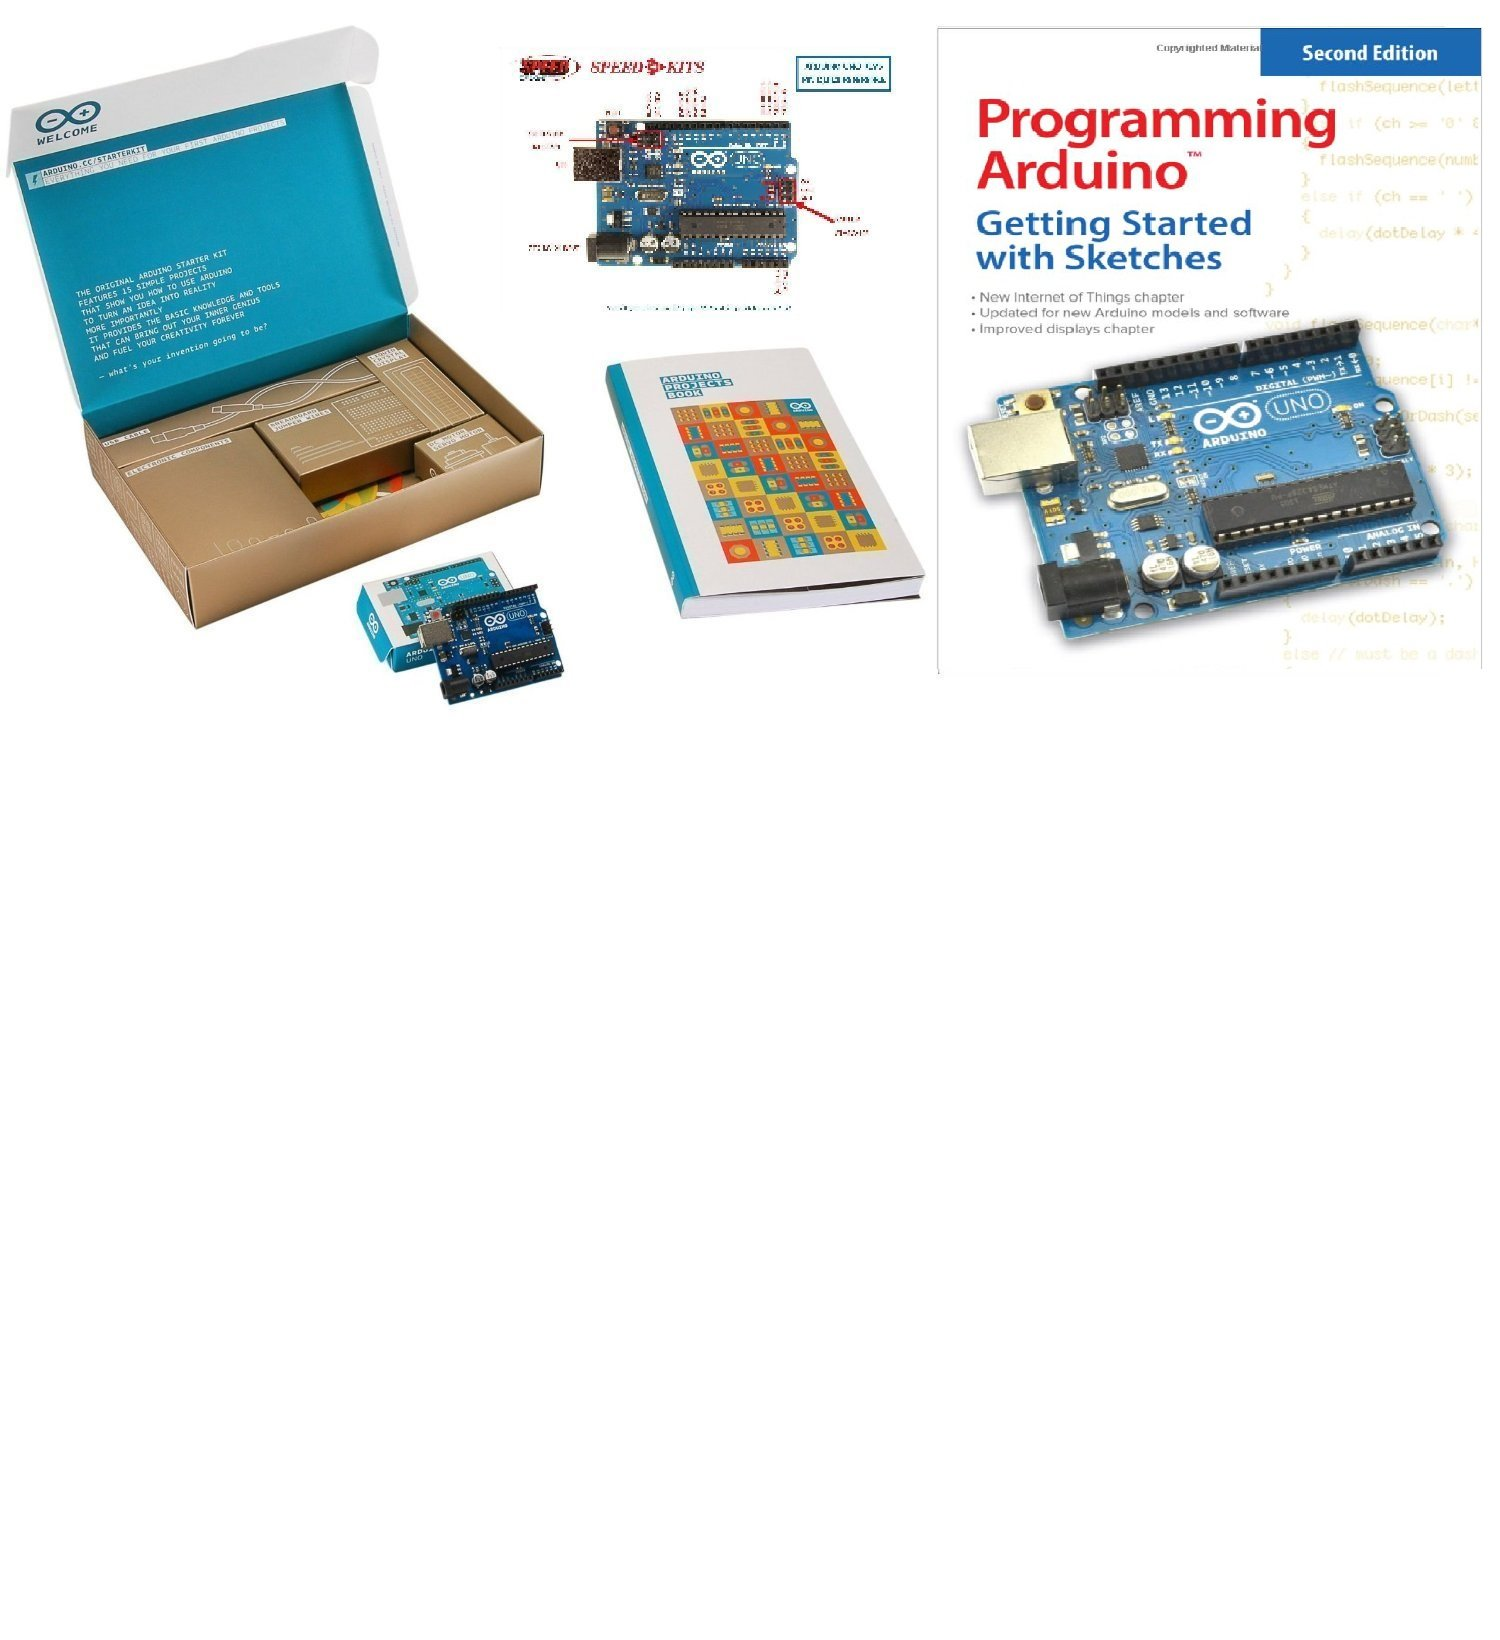 The Official Starter Kit For Arduino Uno R3 Advanced Arduino Kit with Programming Arduino Getting Started with Sketches By Simon Monk by SPEED-KITS